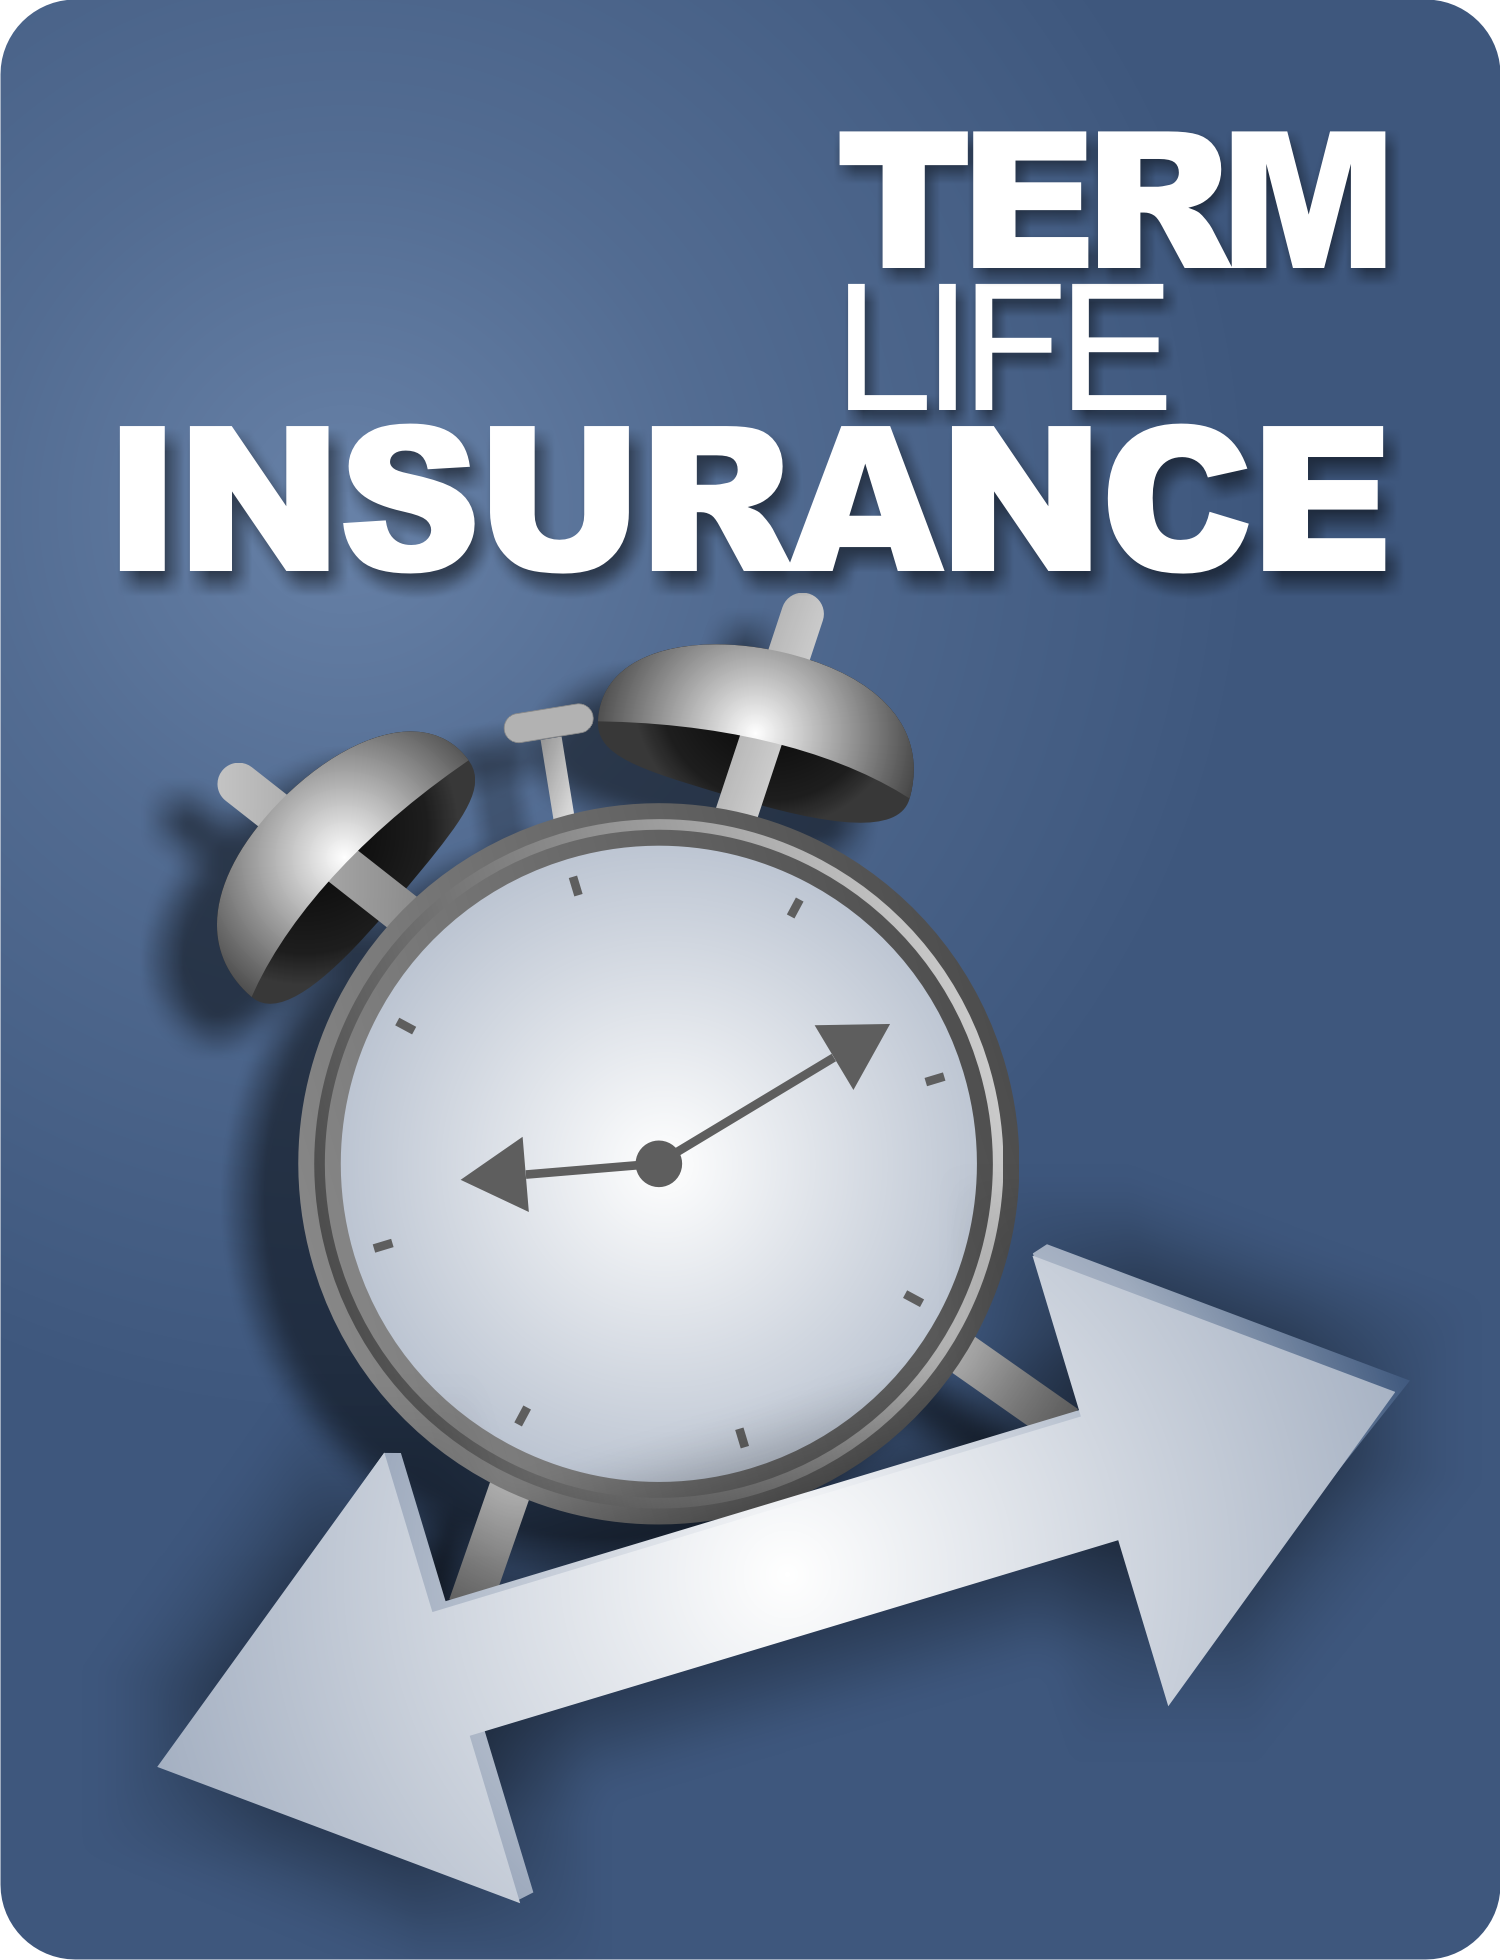 Affordable Life Insurance Quotes Don't Wait Until It's Too Late Protect Your Family With A Term